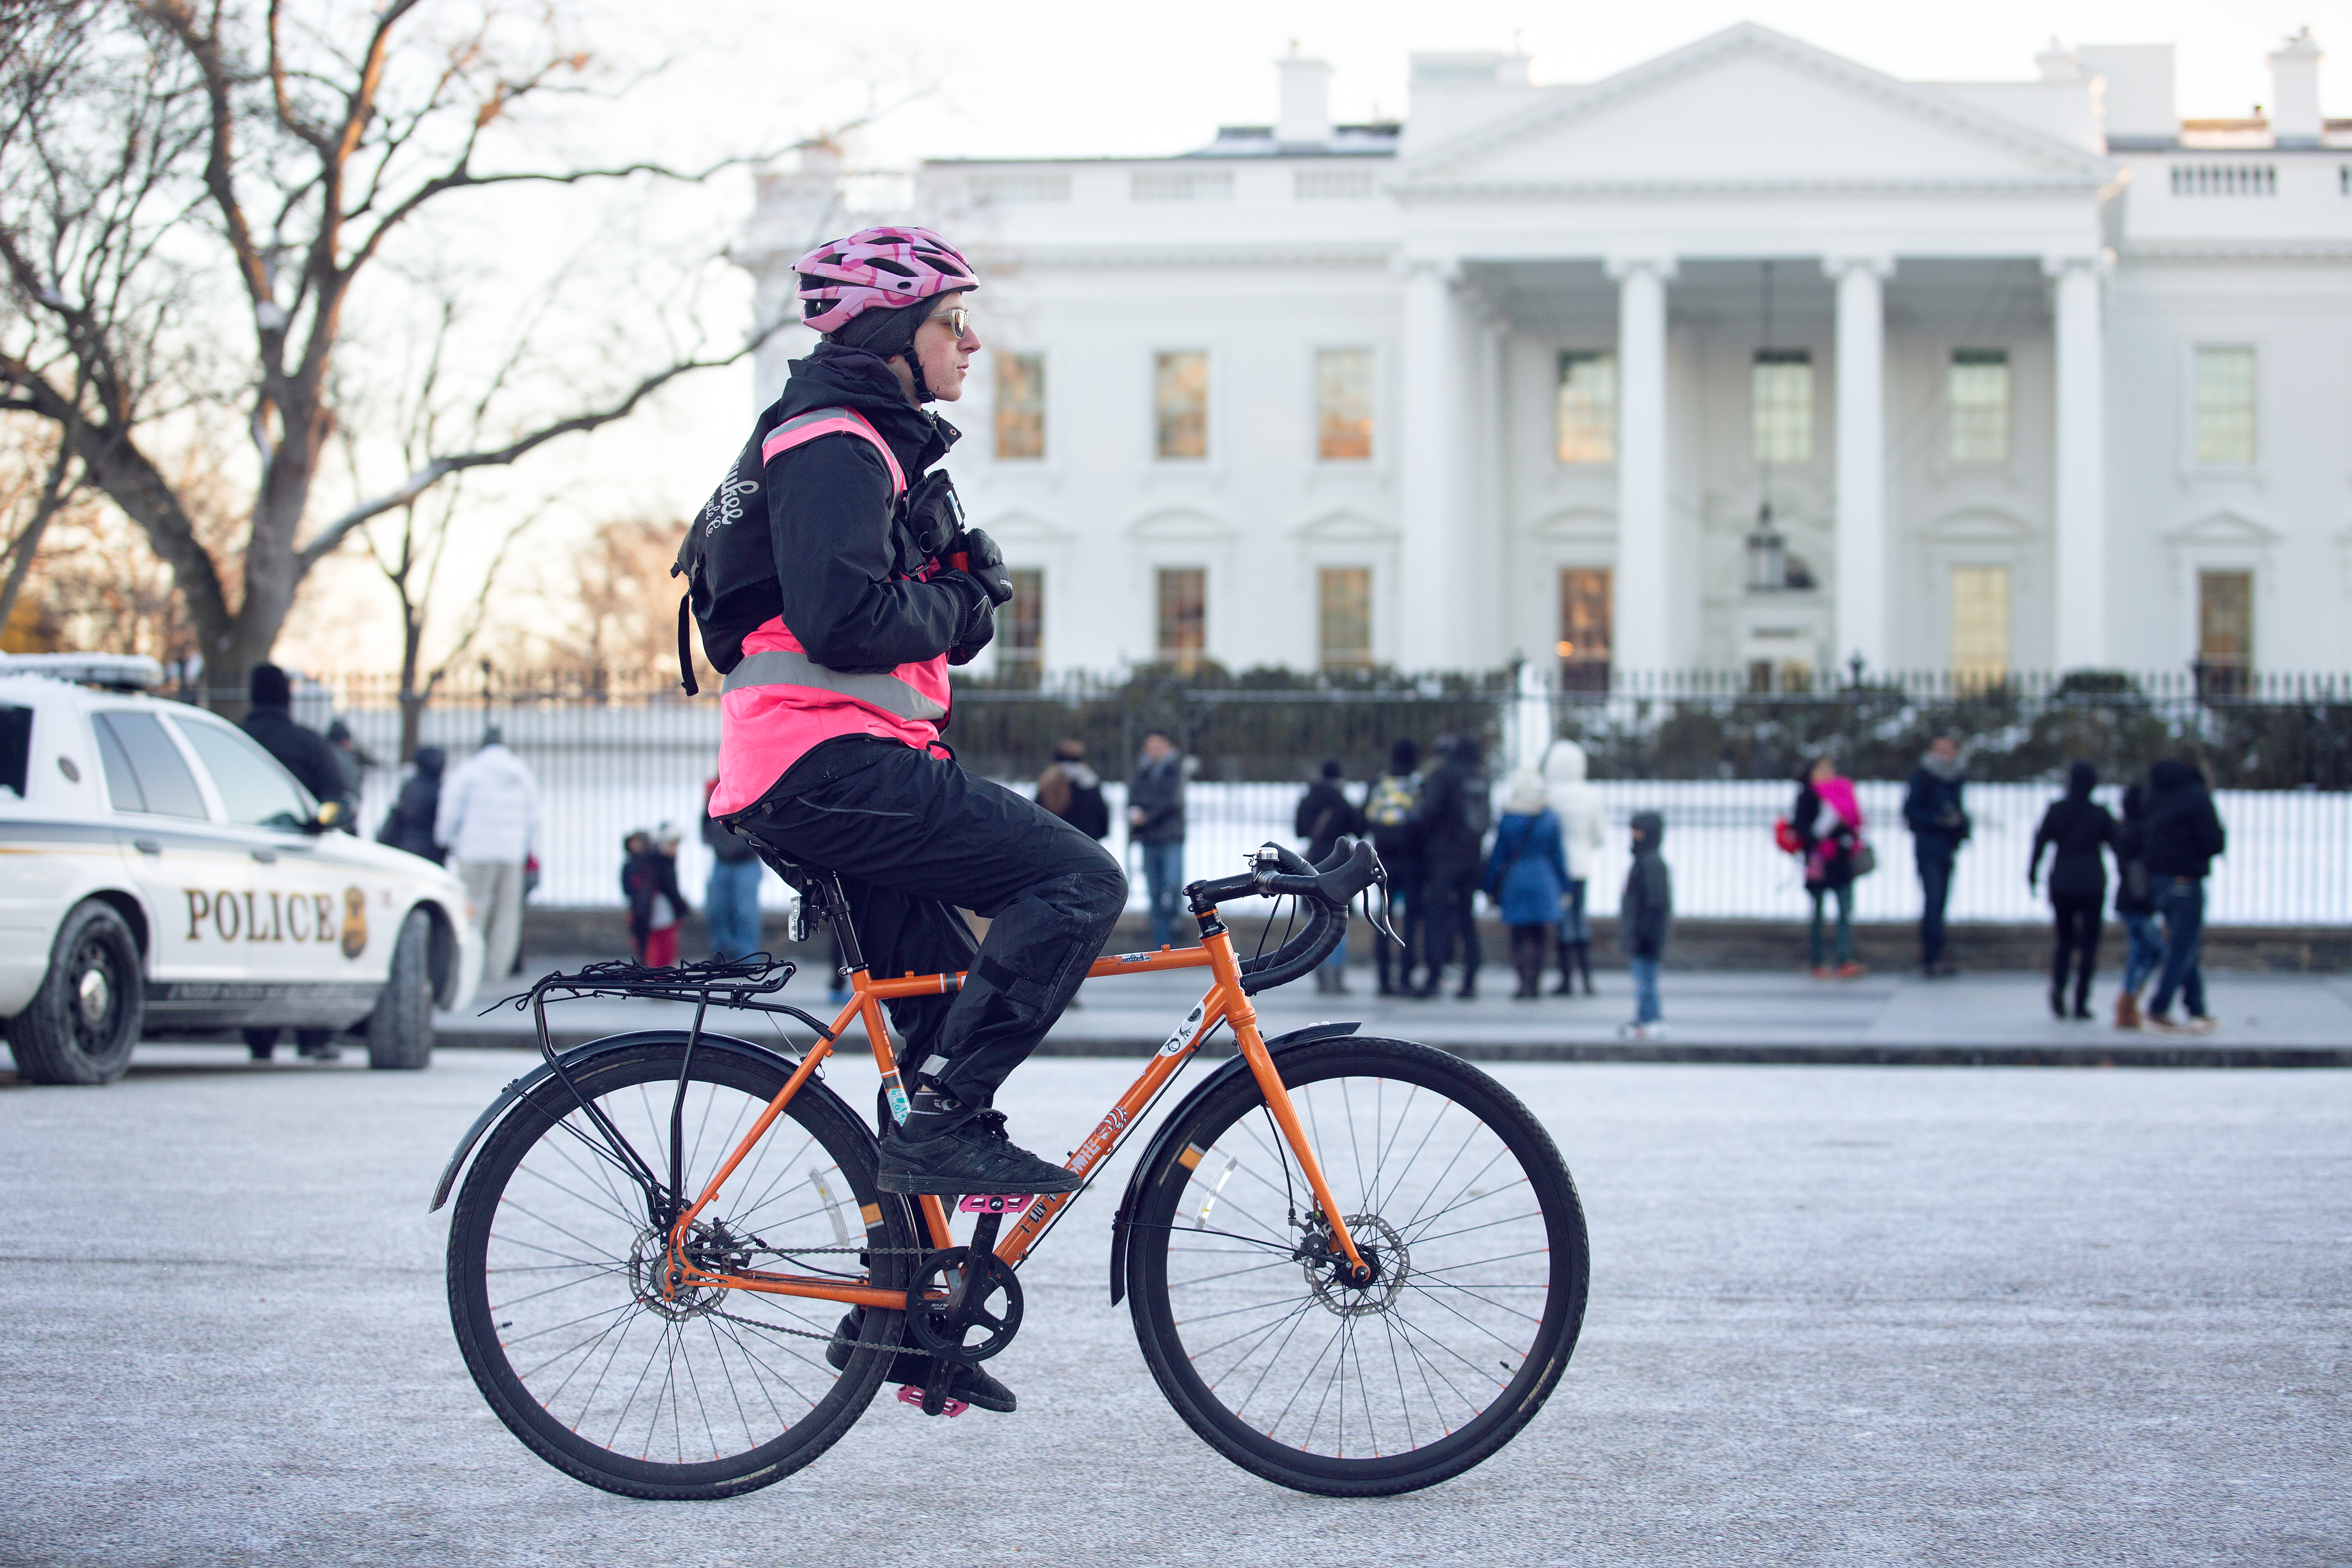 A Postmates bike messenger rides on Pennsylvania Avenue in front of the White House.